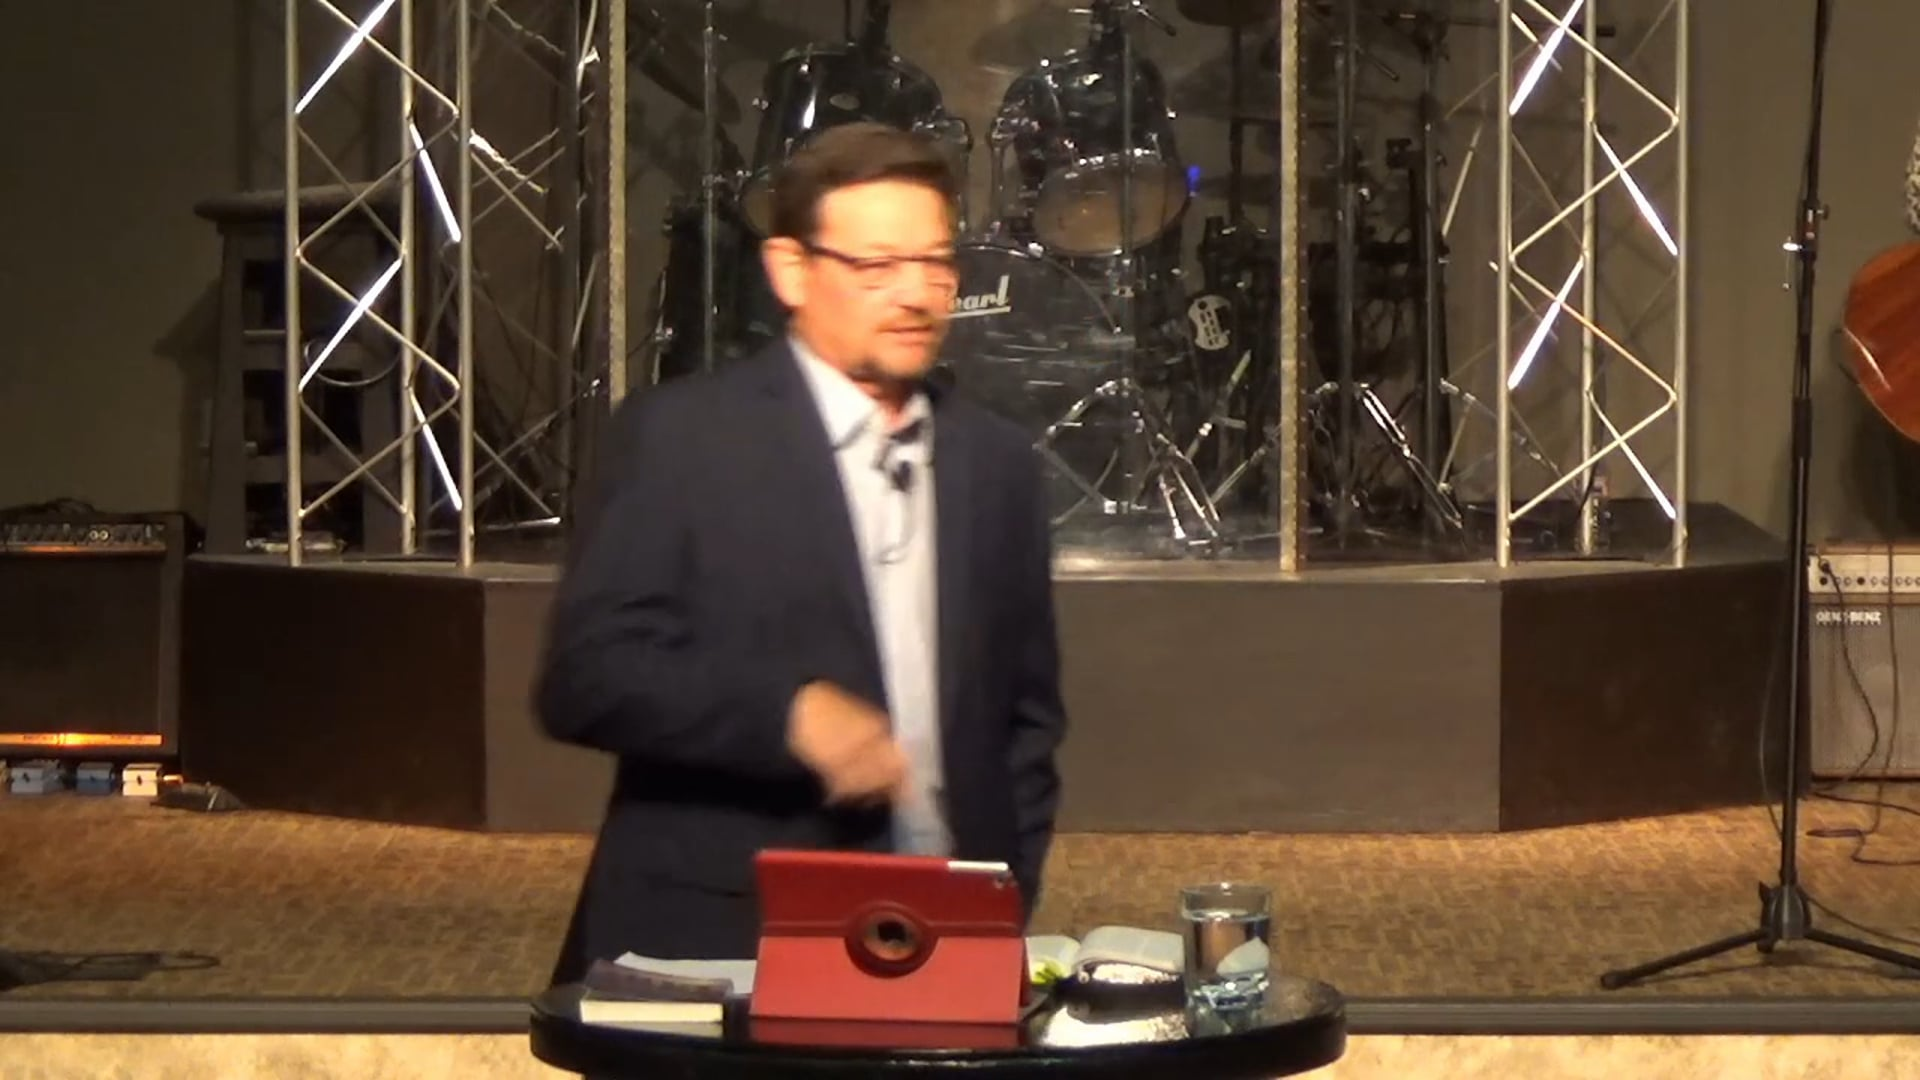 Undeniable: The Word of Your Testimony 8-18-2021 Steven Brody